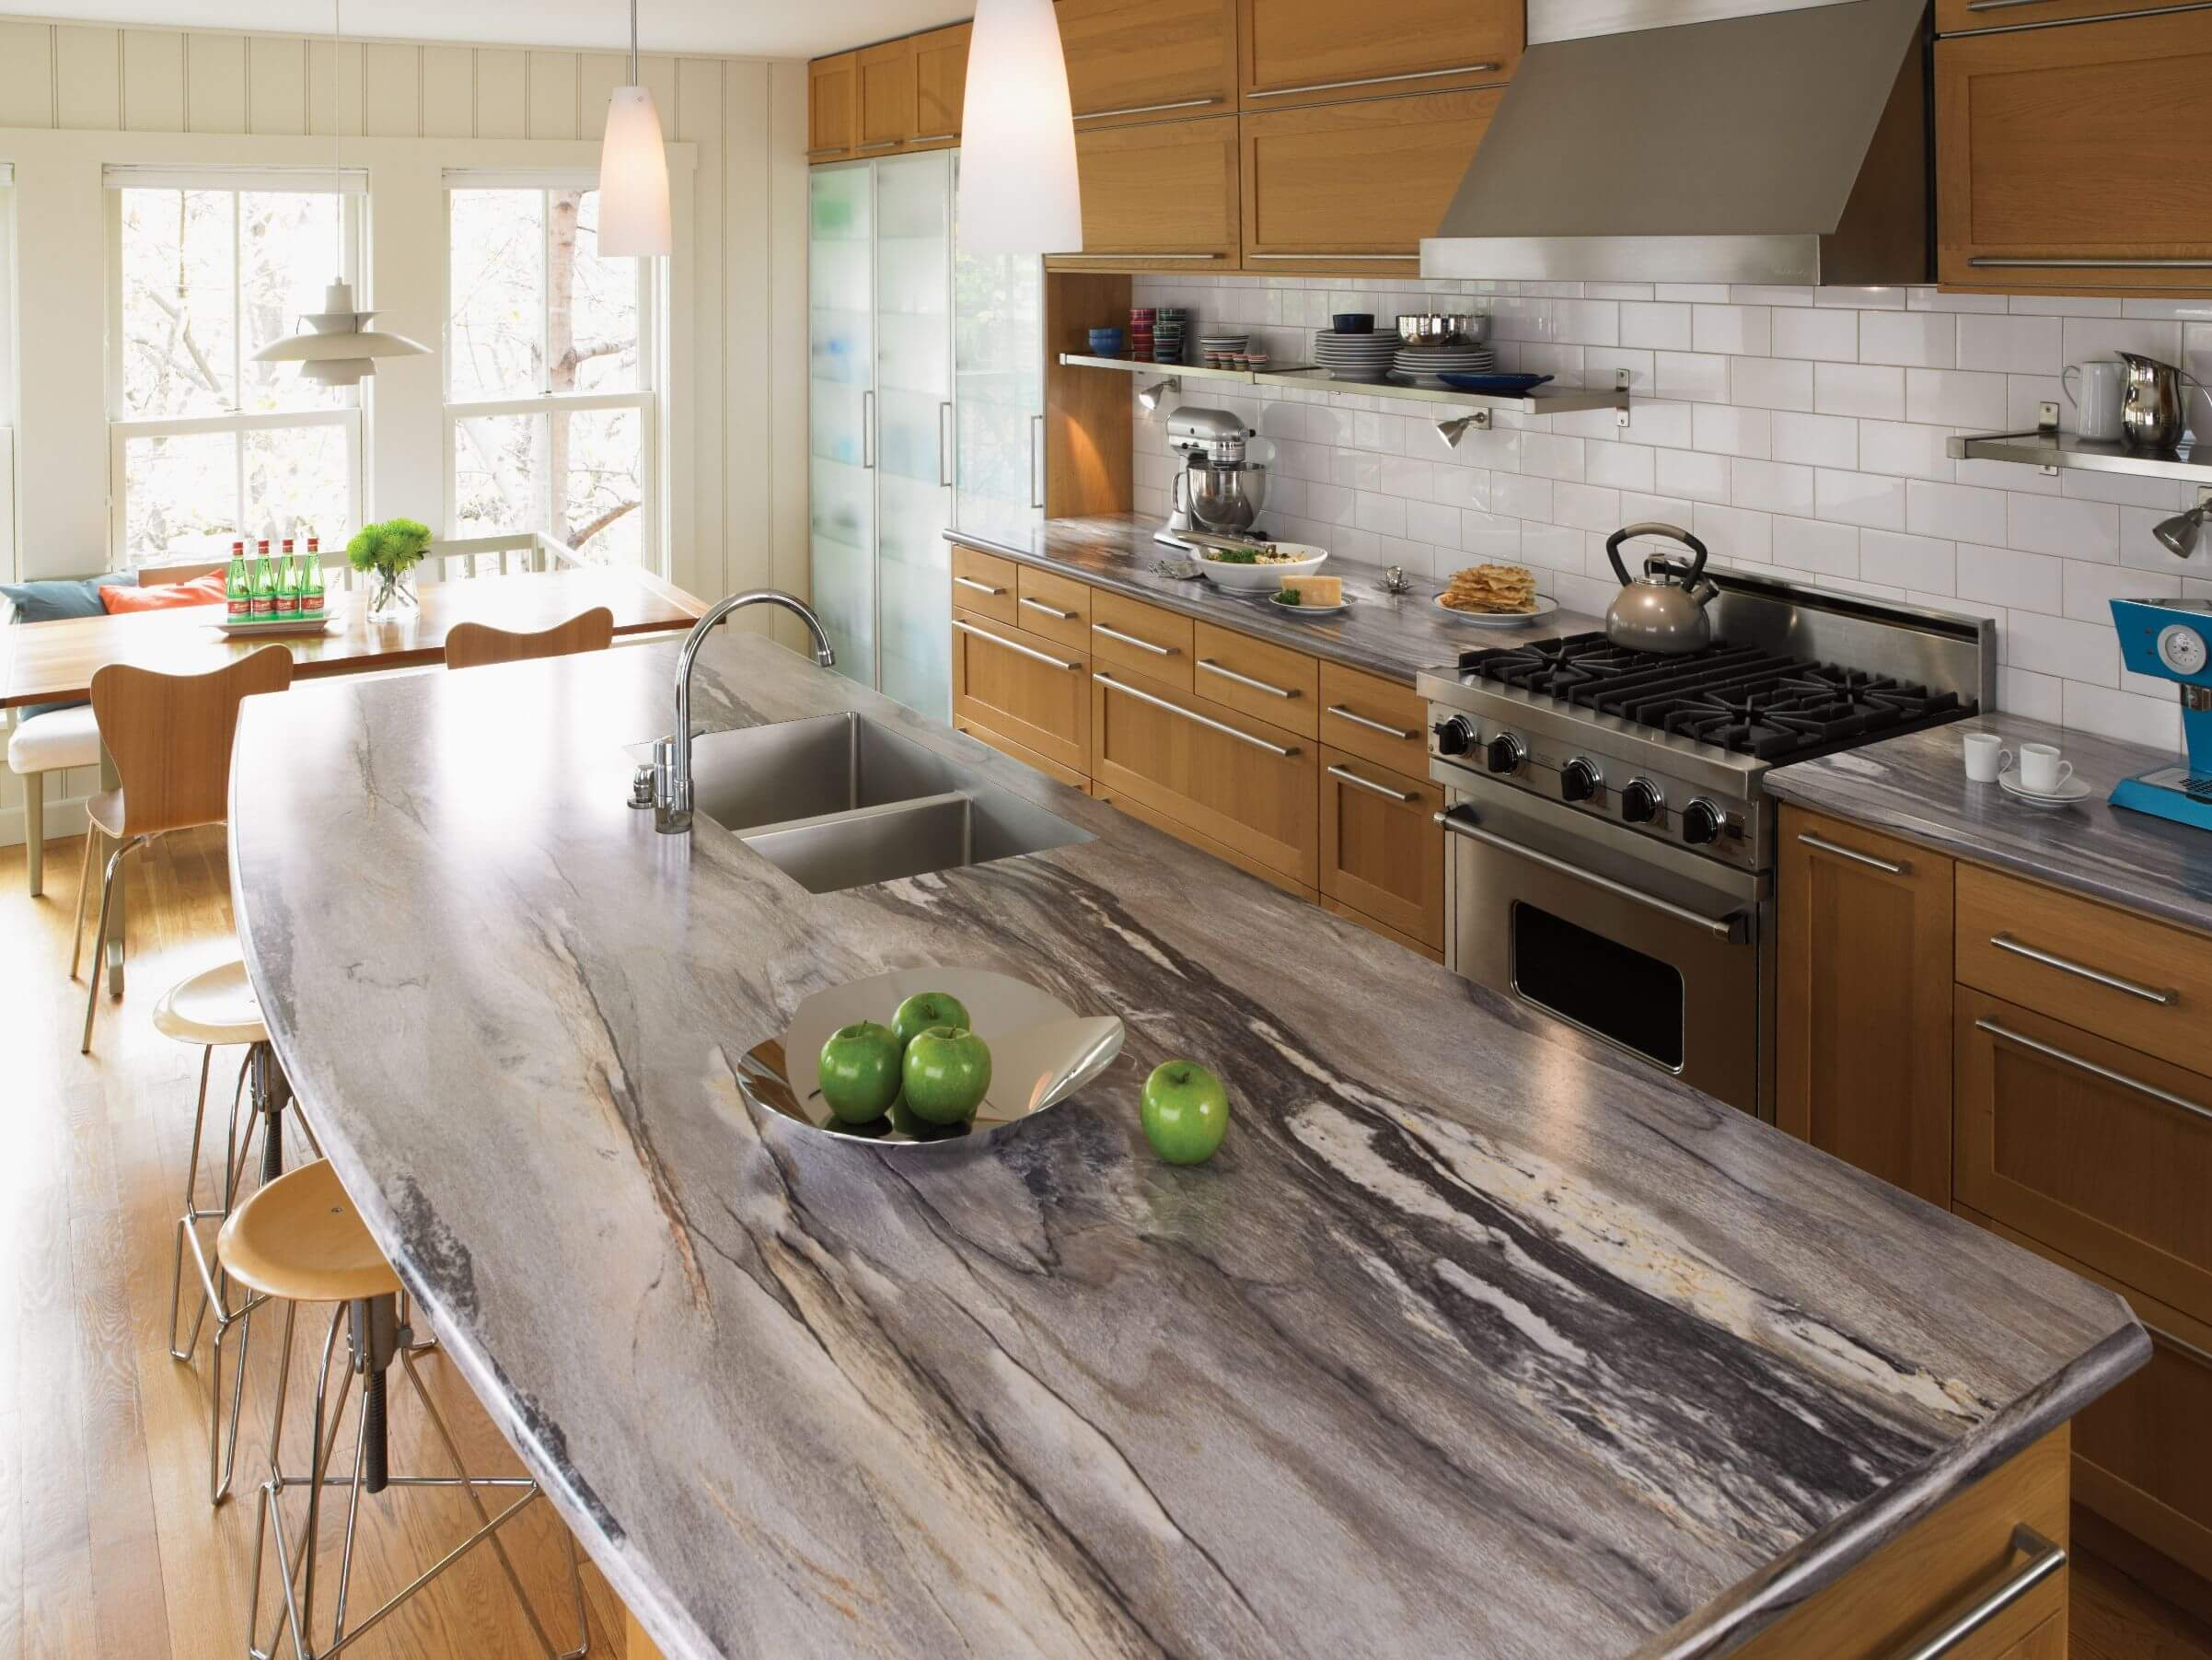 The Ultimate Cheat Sheet For Countertop Shopping Taniya Nayak